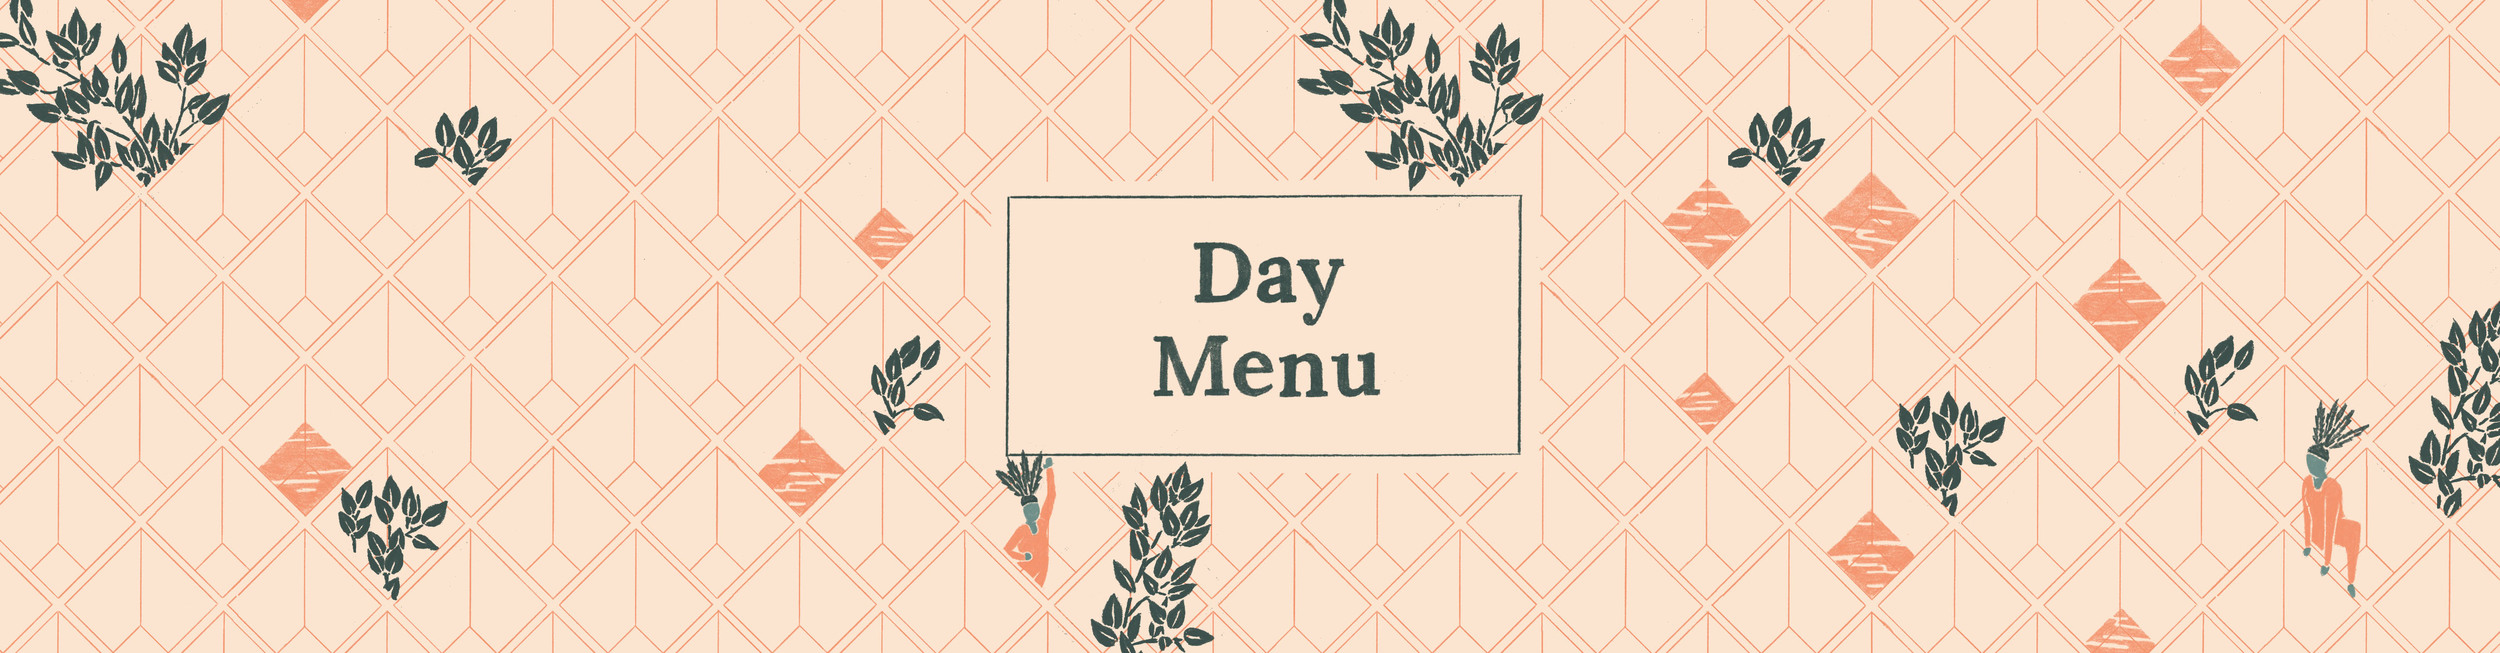 Day Menu Header Banner2.jpg